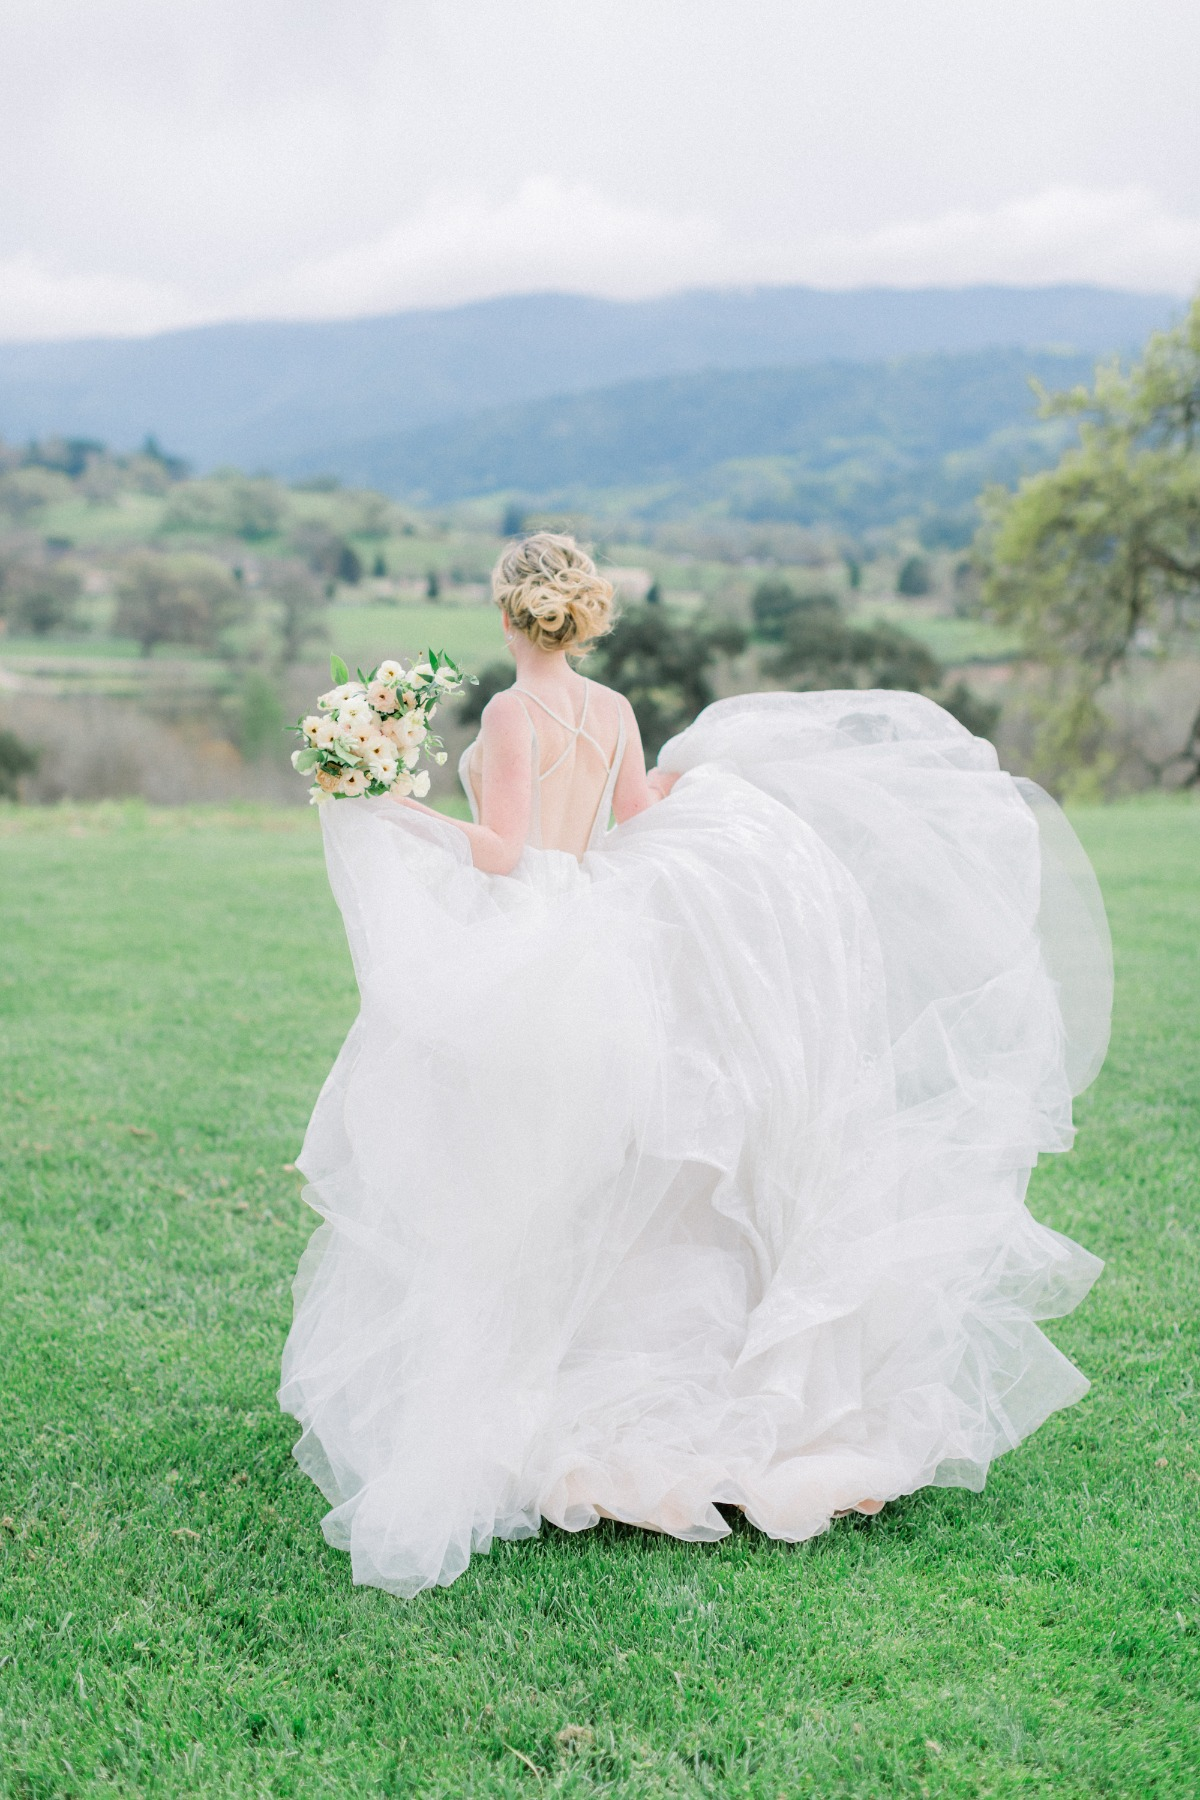 Haley Paige wedding gown with bouquet by Tyler Speier Events